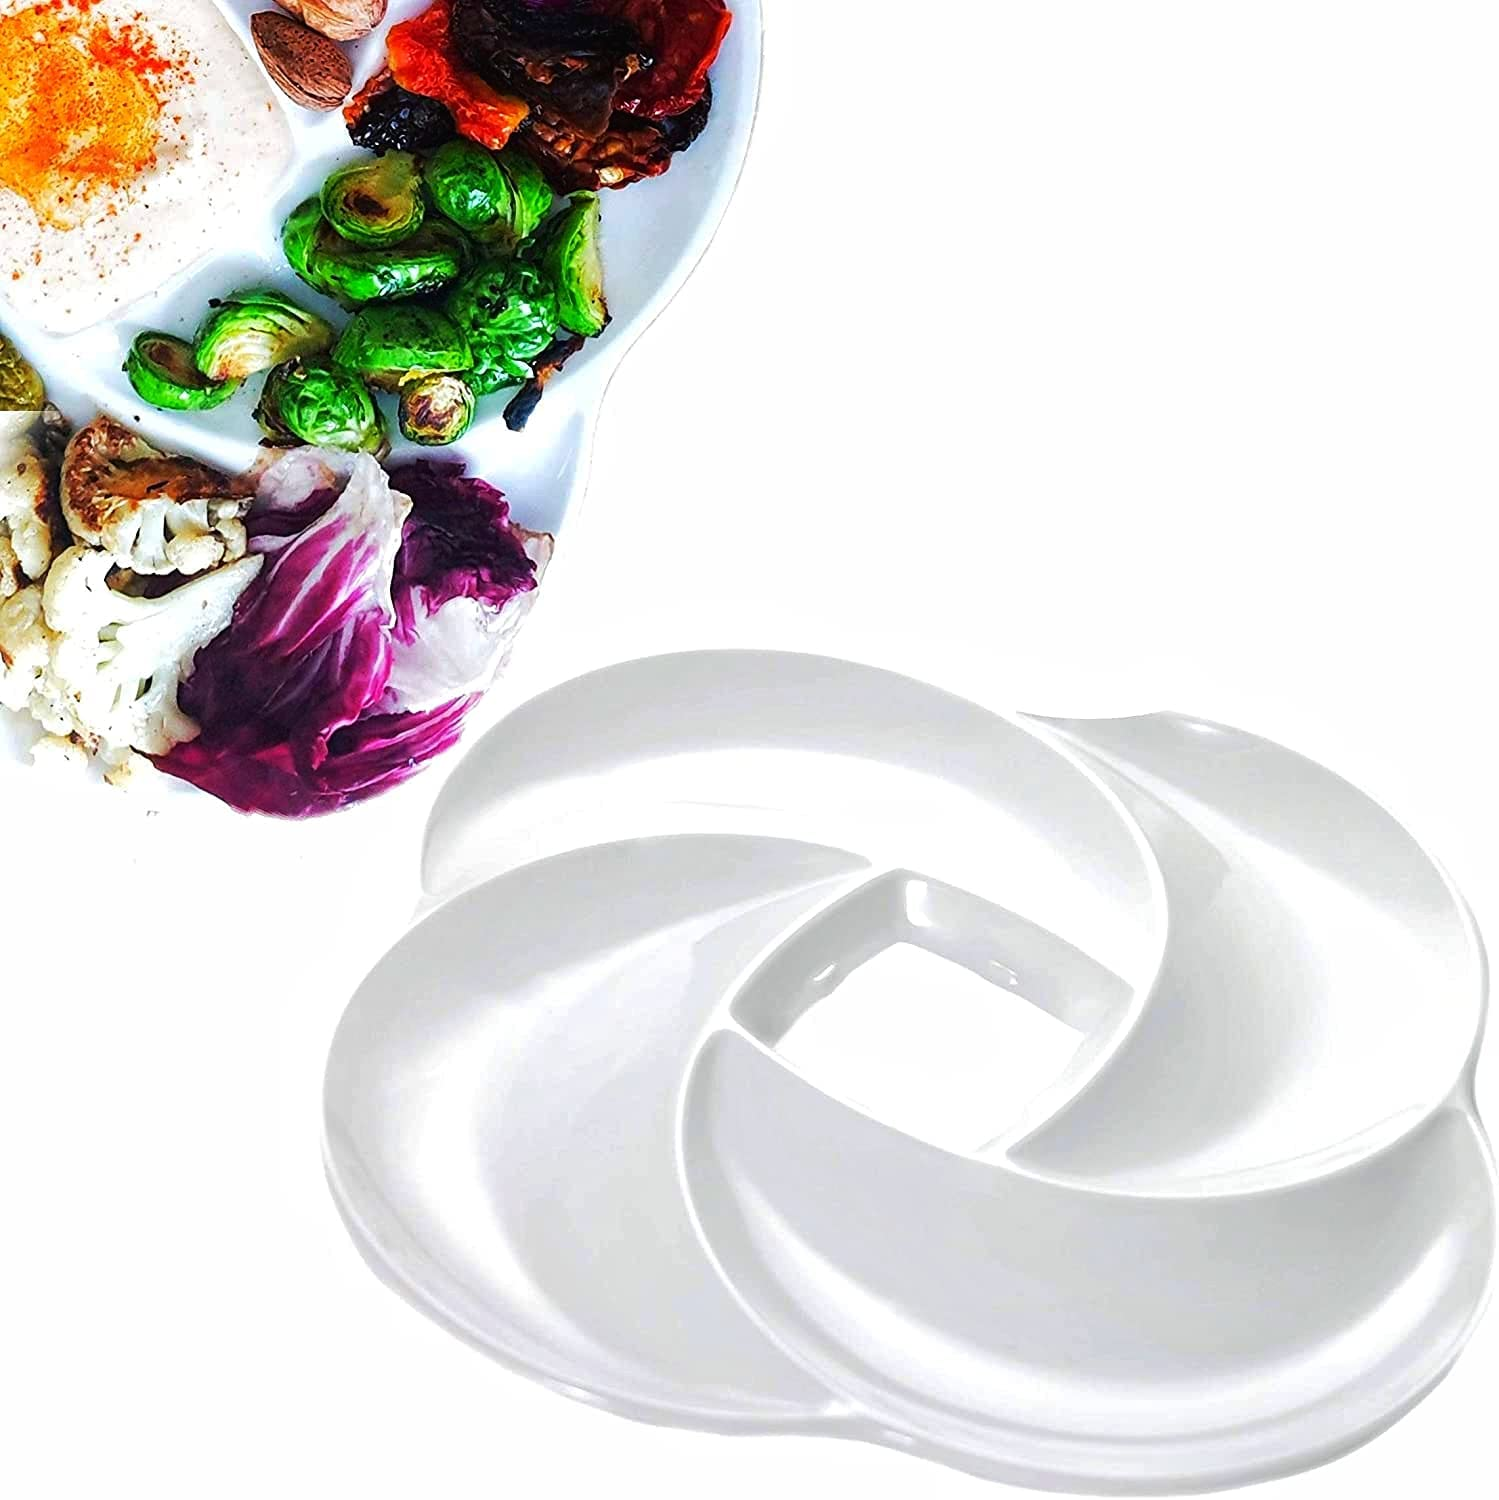 Ecology Reusable Non Disposable White Veggie Tray for Partys. 100% A Grade Melamine Quality Not Plastic. Appetizer Sectioned Platter. Ideal for Vegetables and Fruits. Serving Dish for entertaining.